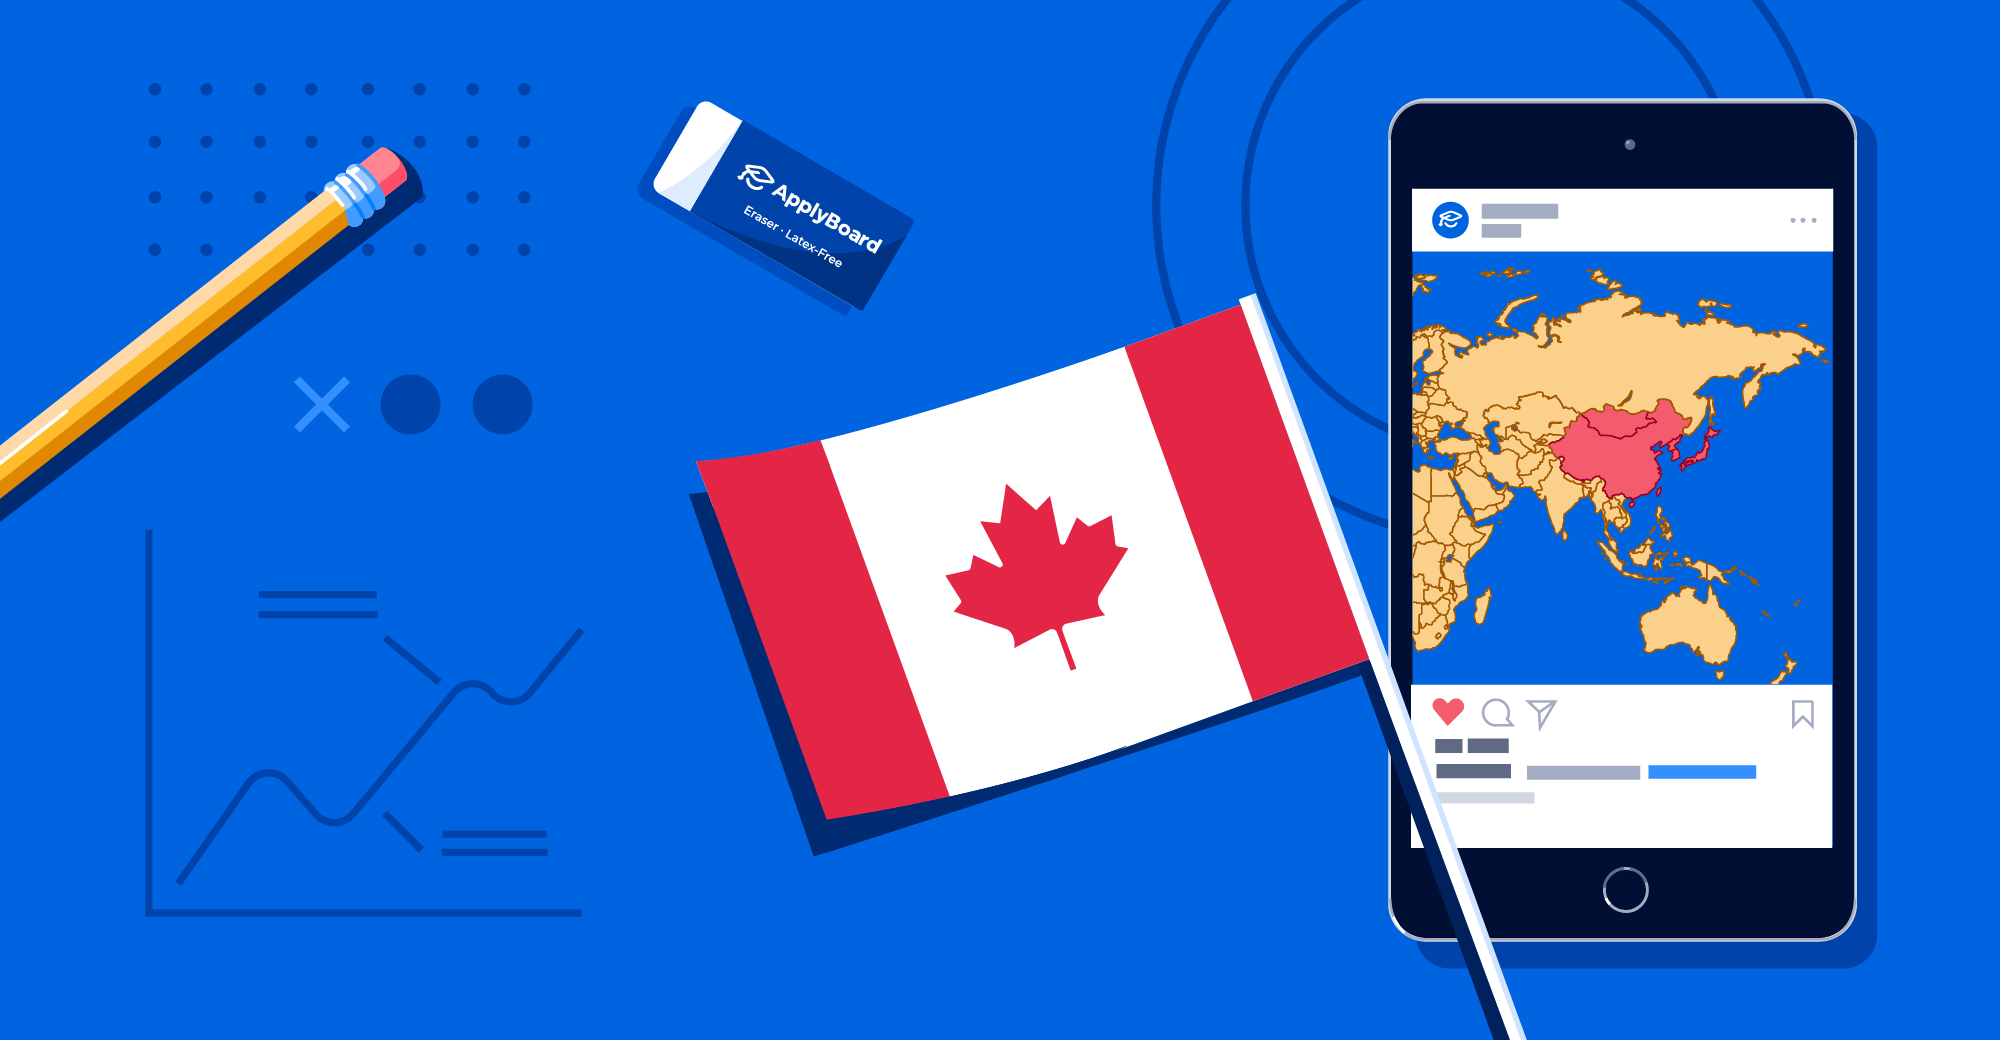 A Canadian flag, a smartphone showing a map of East Asia, and some school supplies